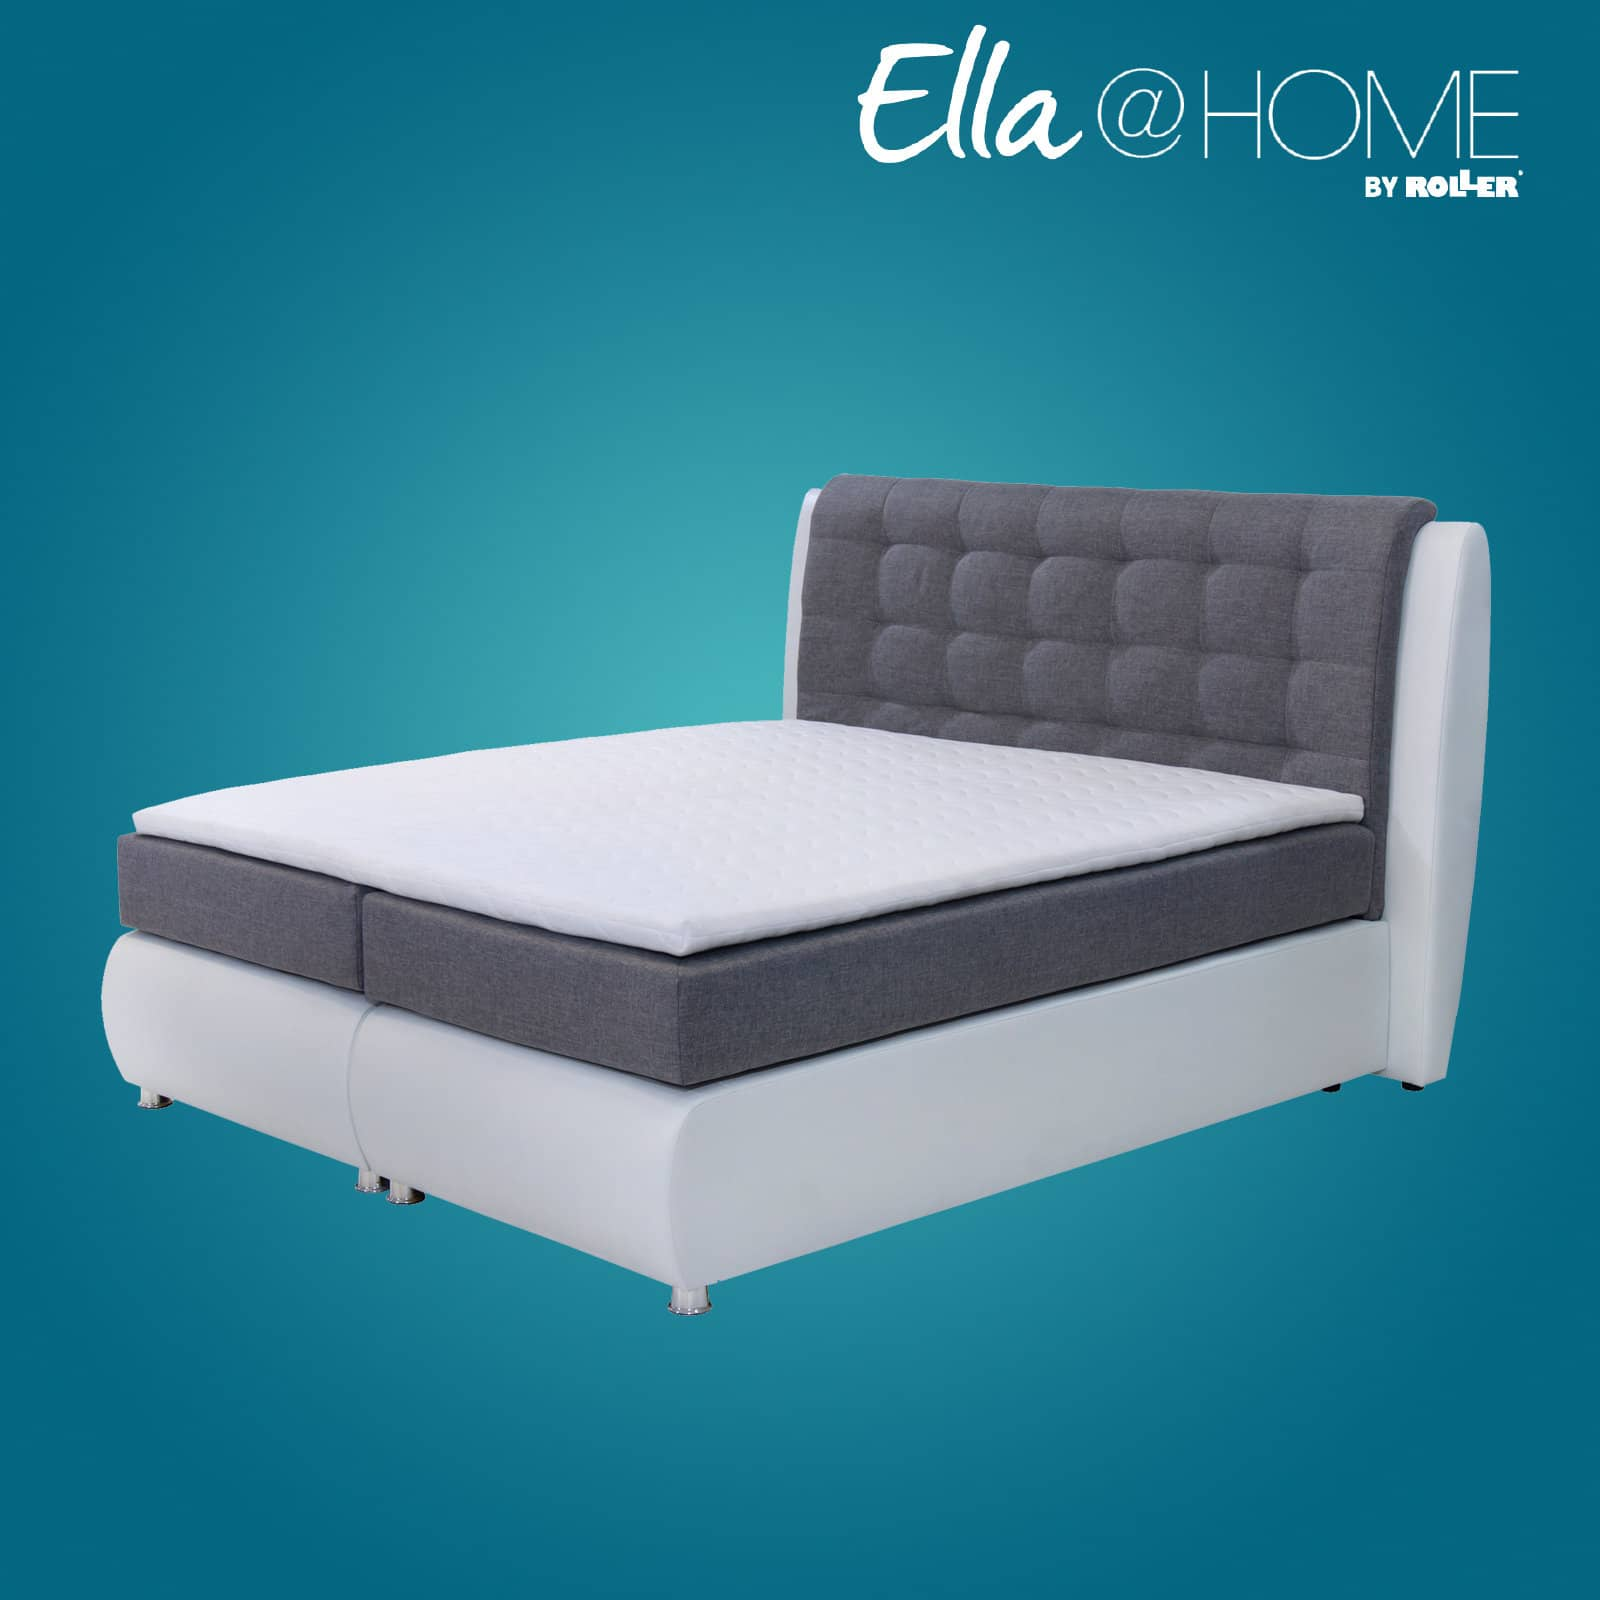 bis zu 40 sparen boxspringbett marseille von ella home bei roller ab 599 cherry m bel. Black Bedroom Furniture Sets. Home Design Ideas